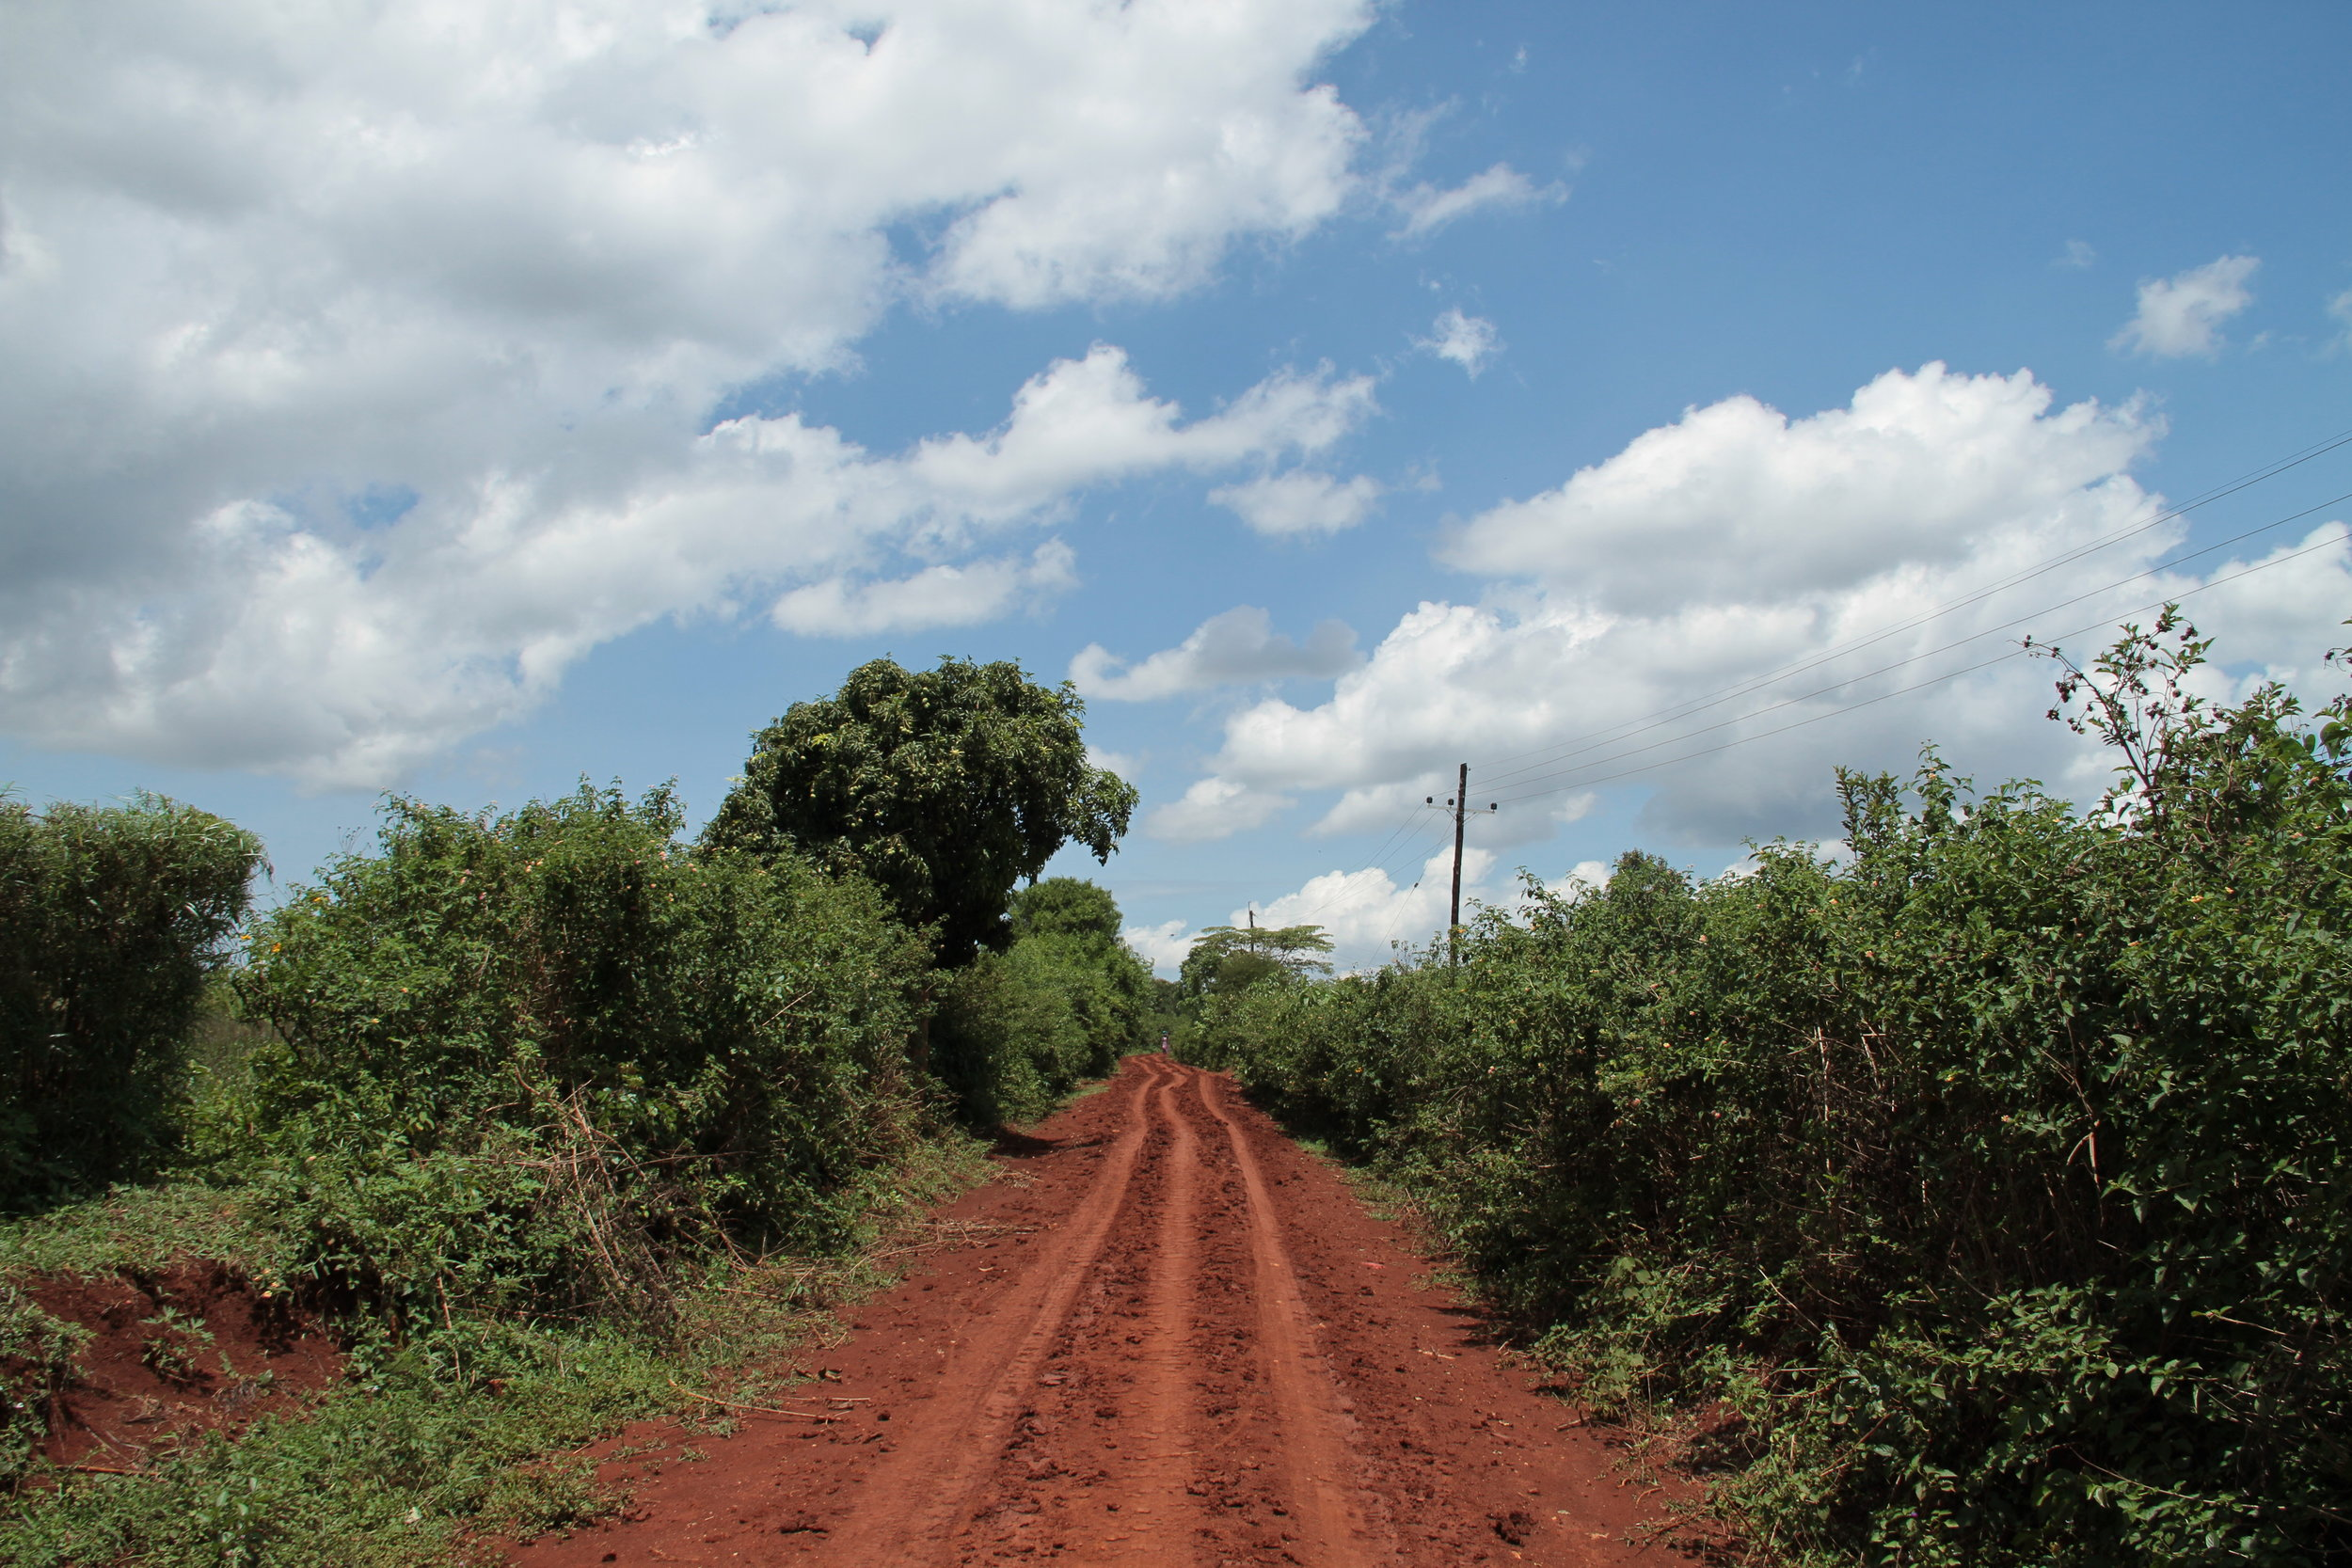 Dirt roads can make transport of goods tough during rain storms